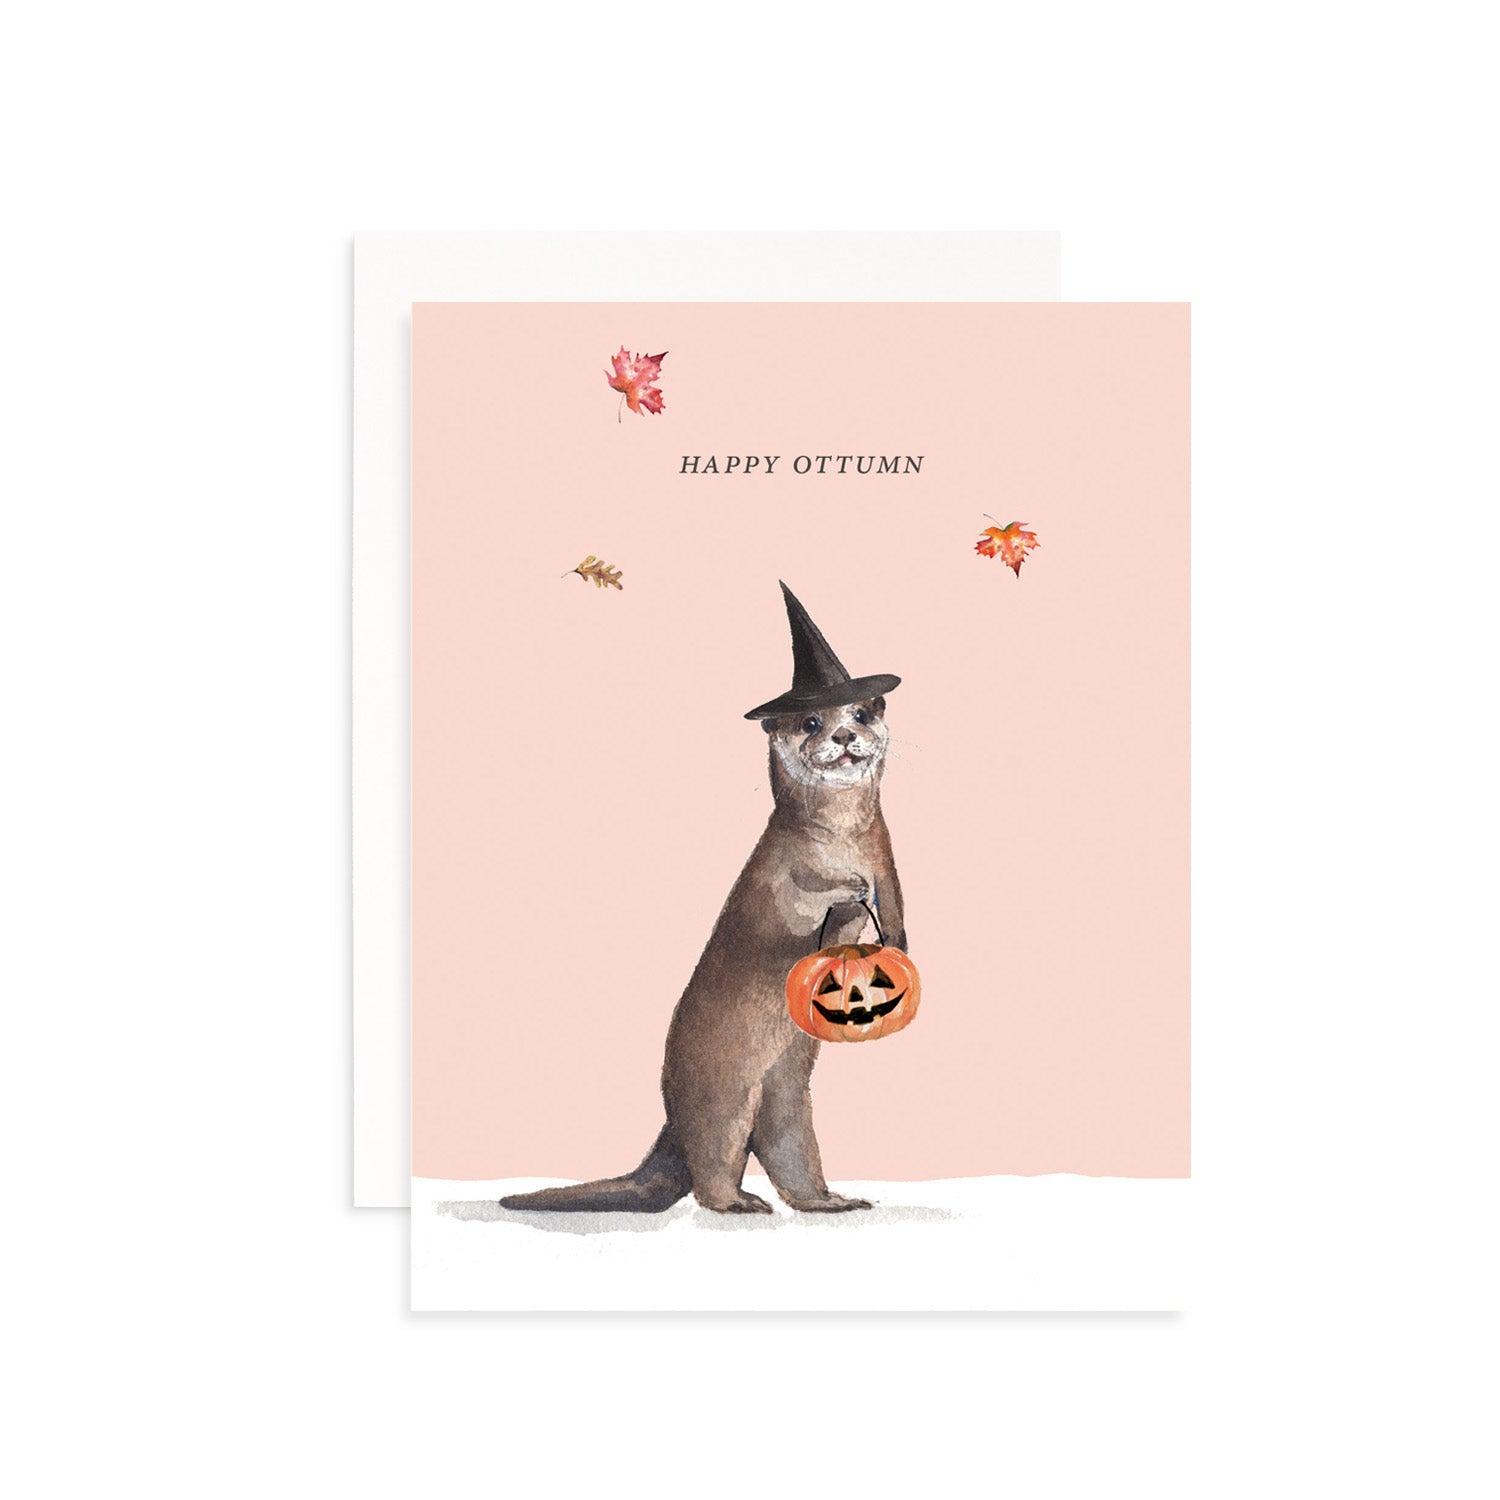 Happy Ottumn Greeting Card